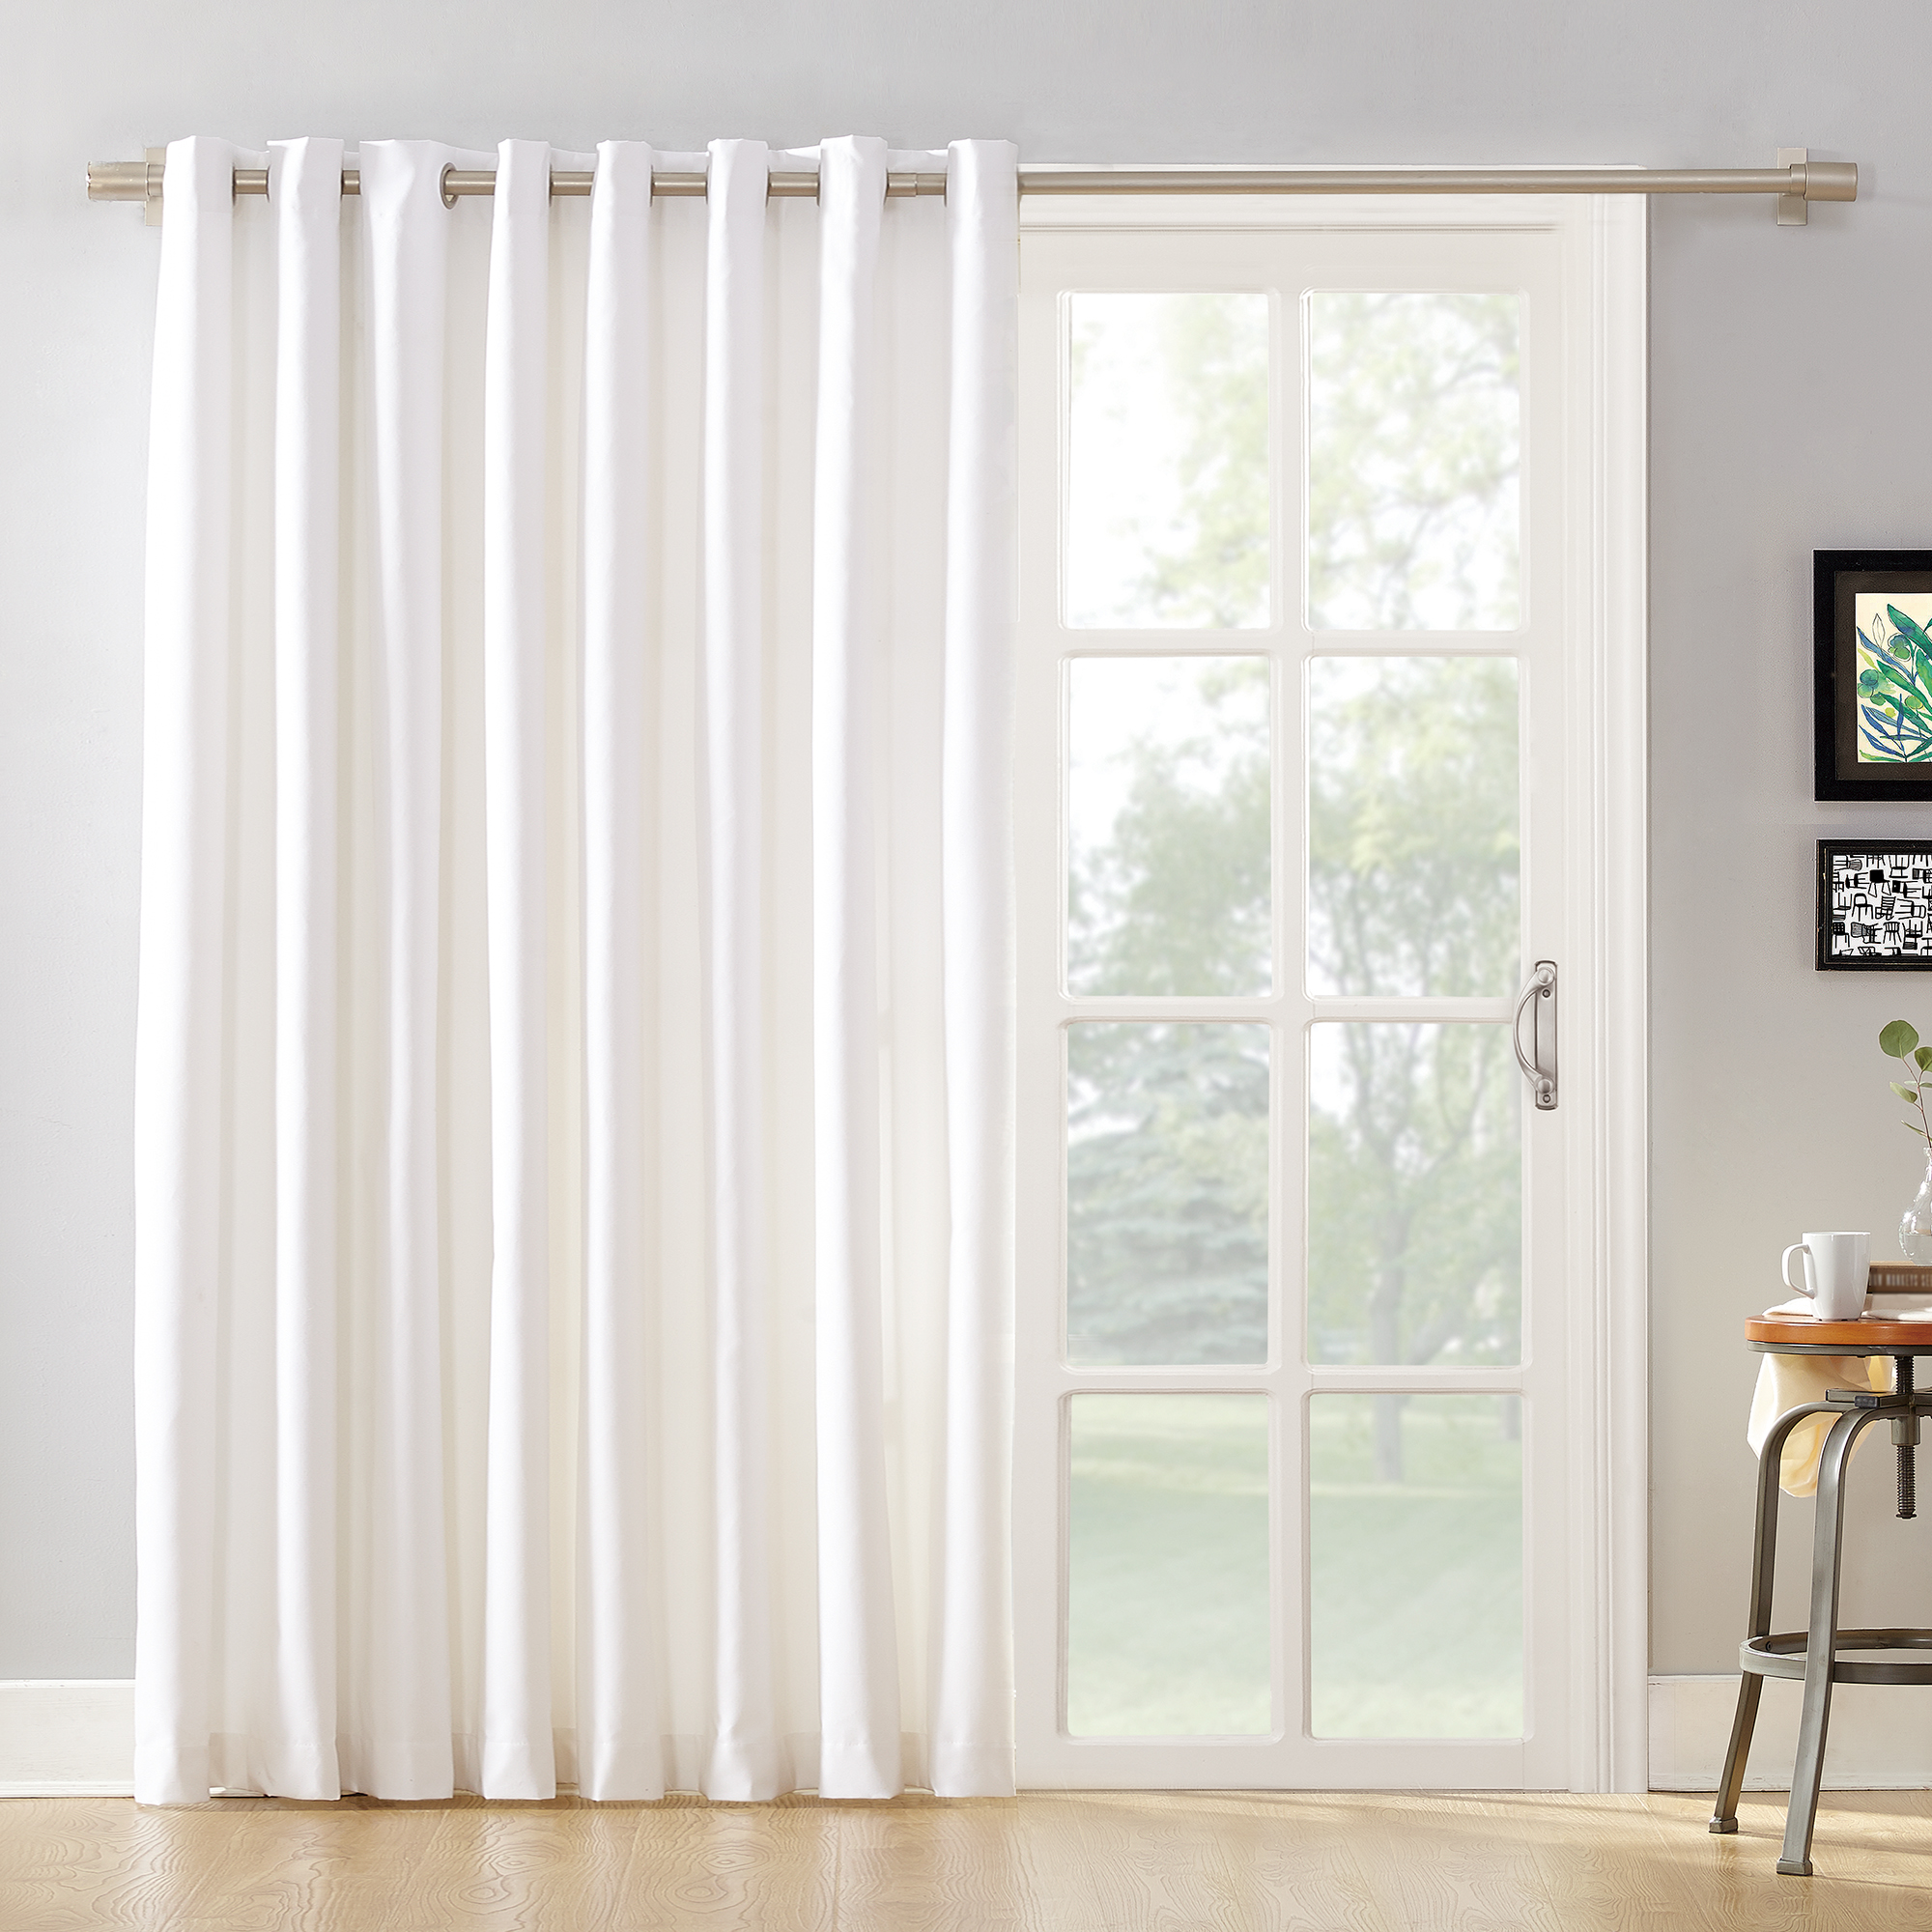 Patio Door Curtains And Specifications